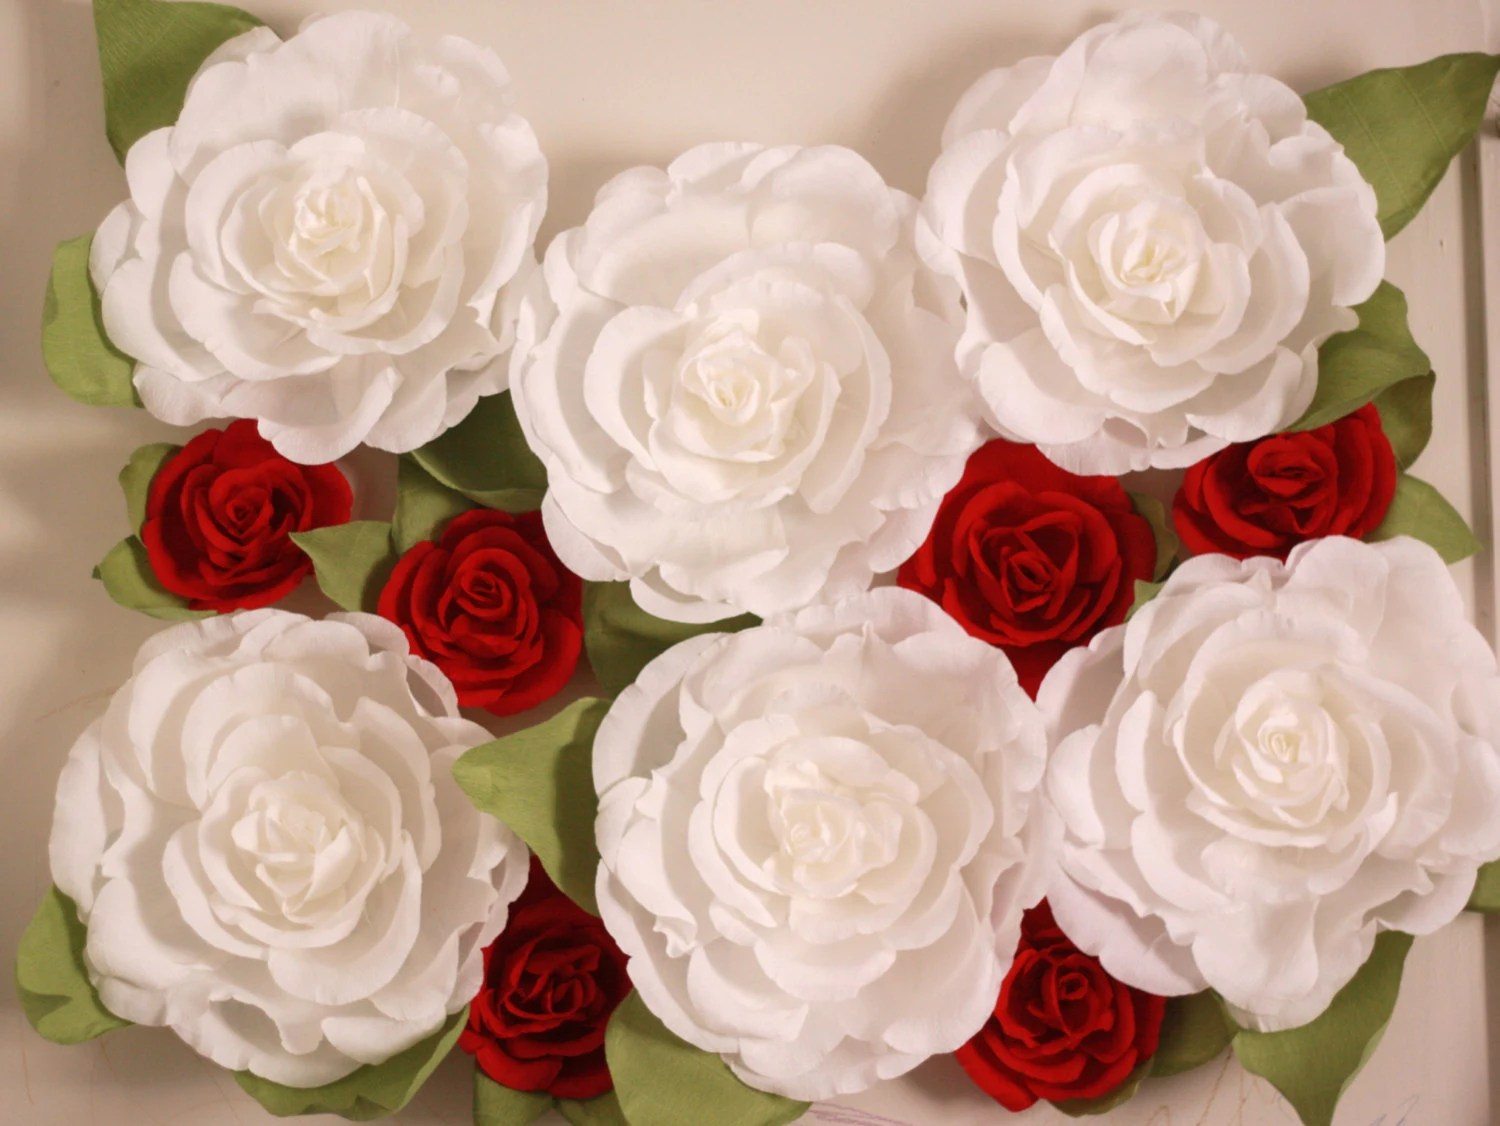 Giant Paper Flower Wall Display. Wedding Backdrop. Shop